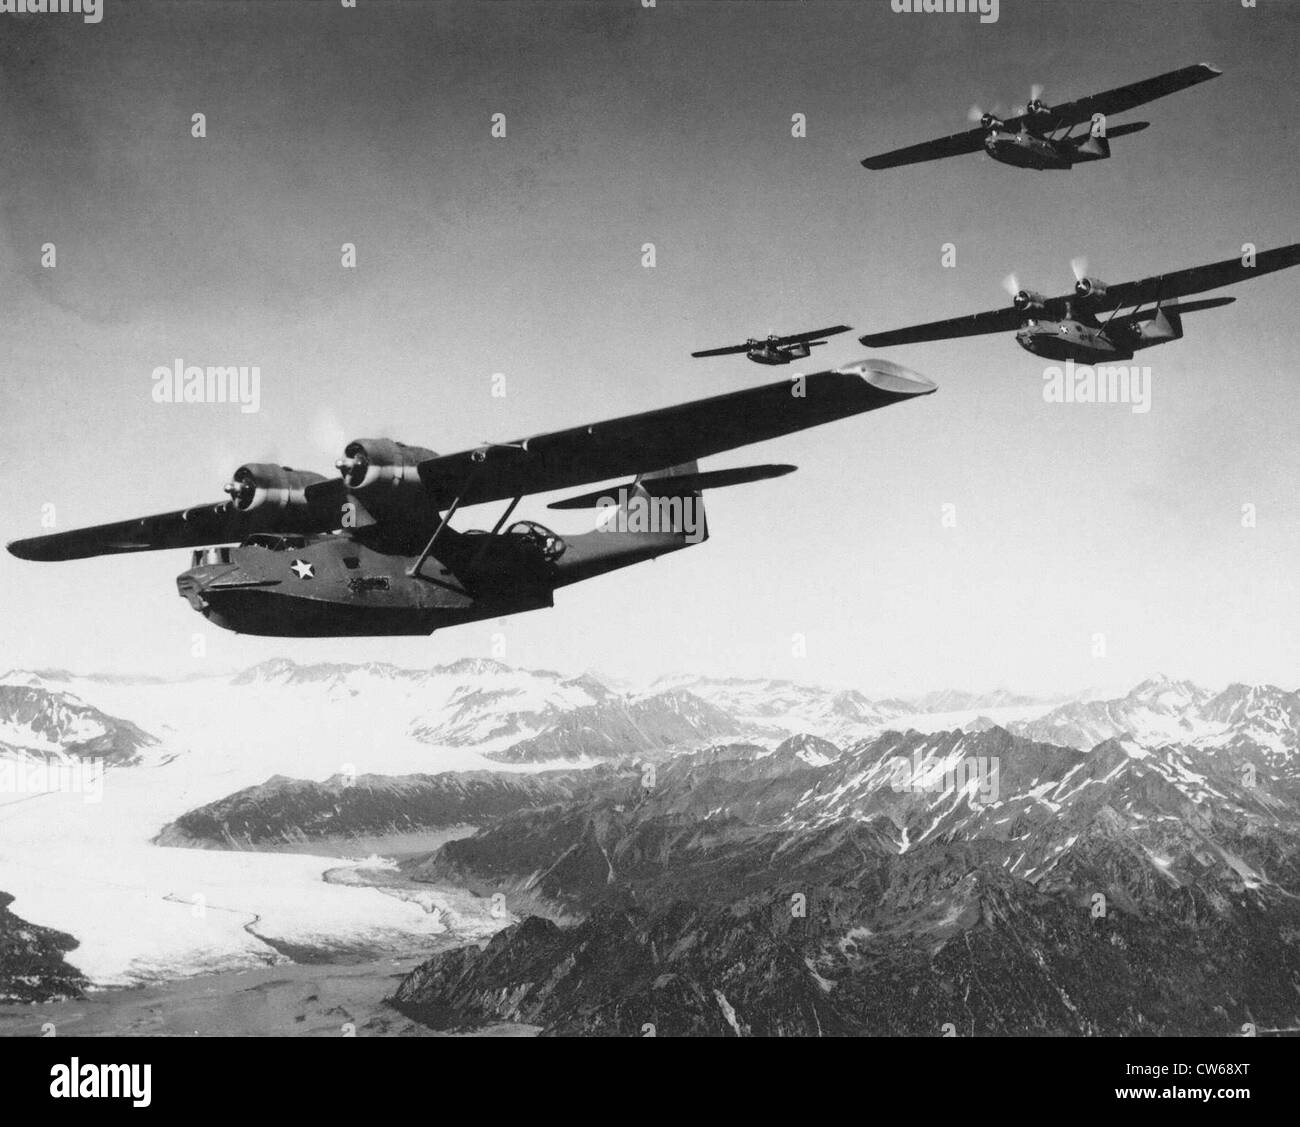 American hydroplane Consolidated PBY Catalina - Stock Image